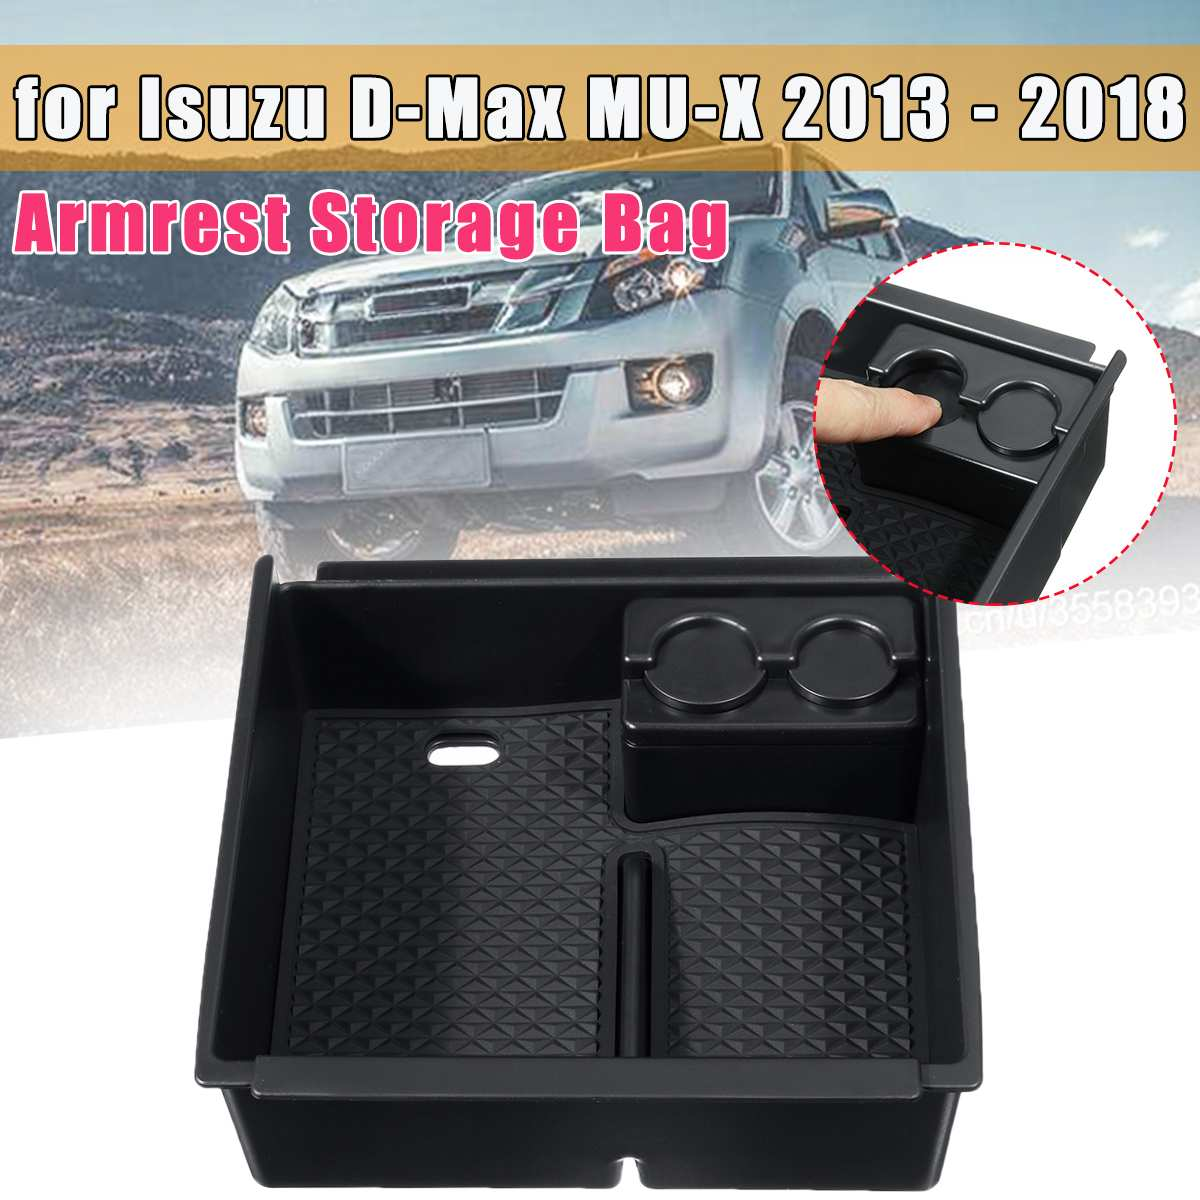 For Isuzu D-Max MU-X 2013 2014 2015 2016 2017 2018 Central Armrest Storage Box Holder Tray Organizer Interior Accessories